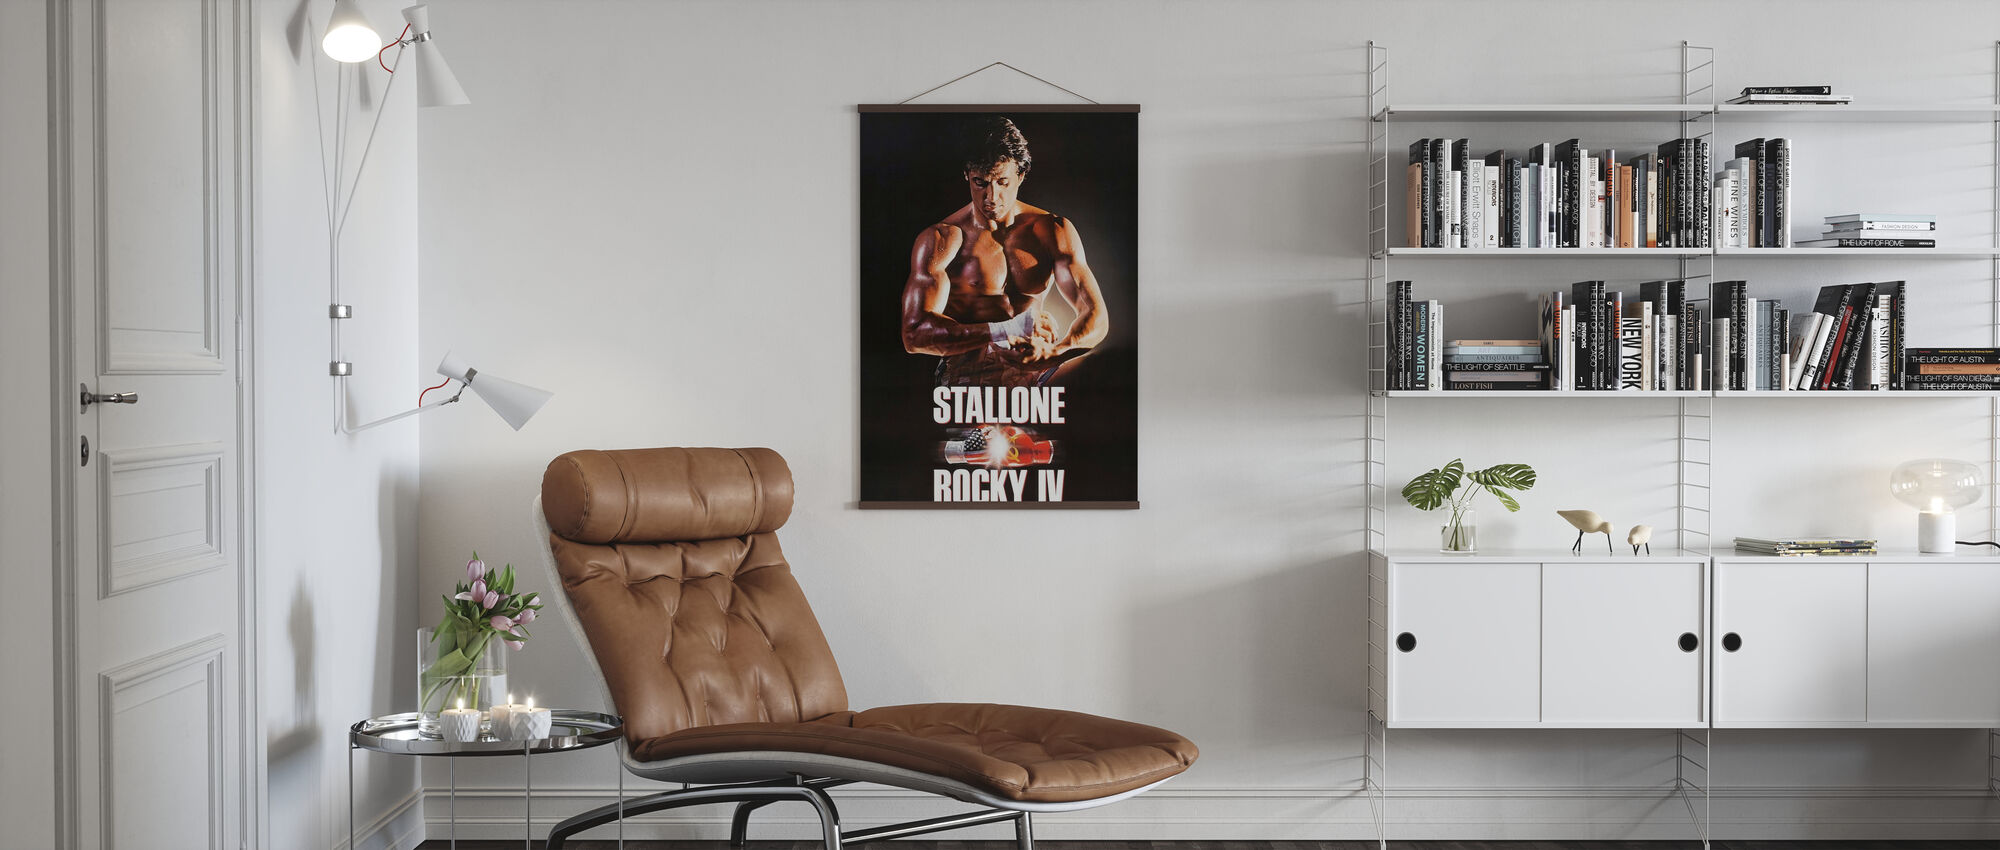 Sylvester Stallone in Rocky IV - Poster - Wohnzimmer